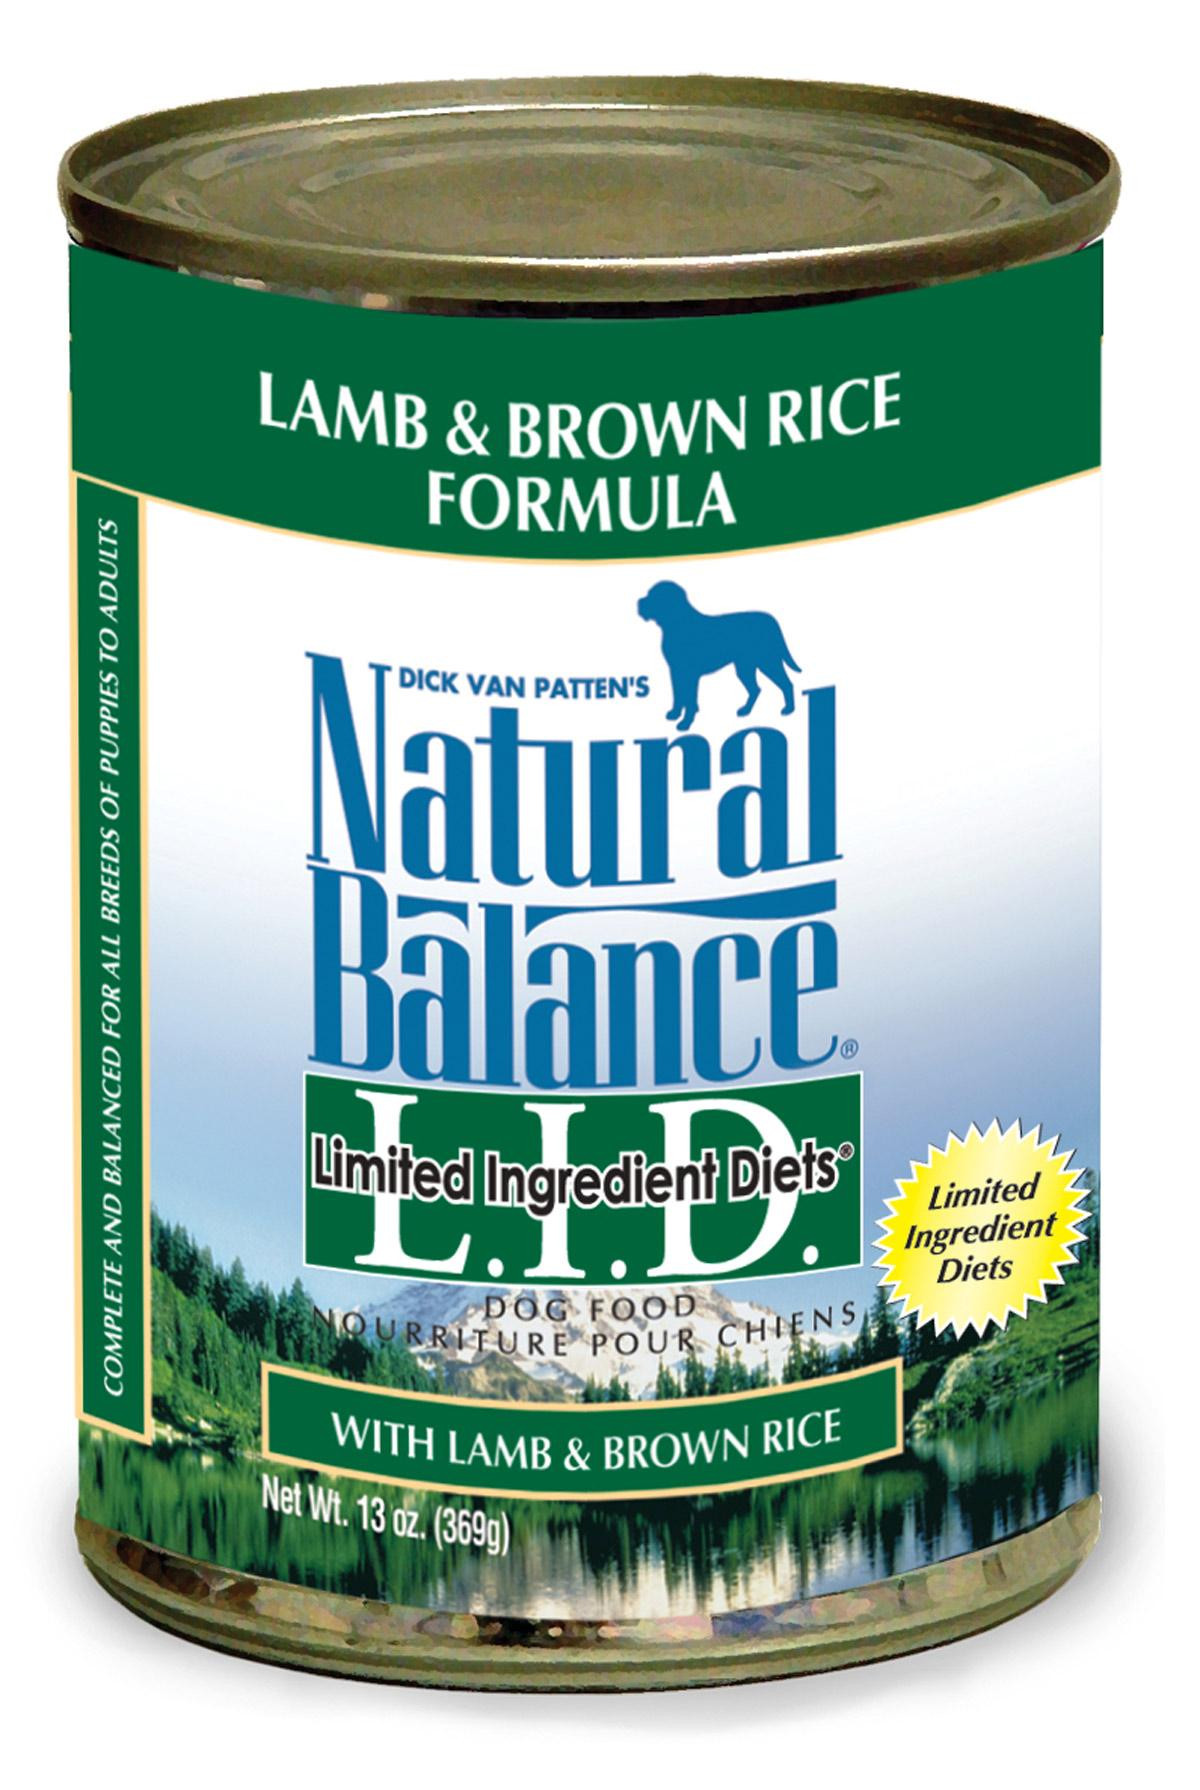 Is Brown Rice Good For Dogs  Natural Balance Limited Ingre nt Diets Lamb and Brown